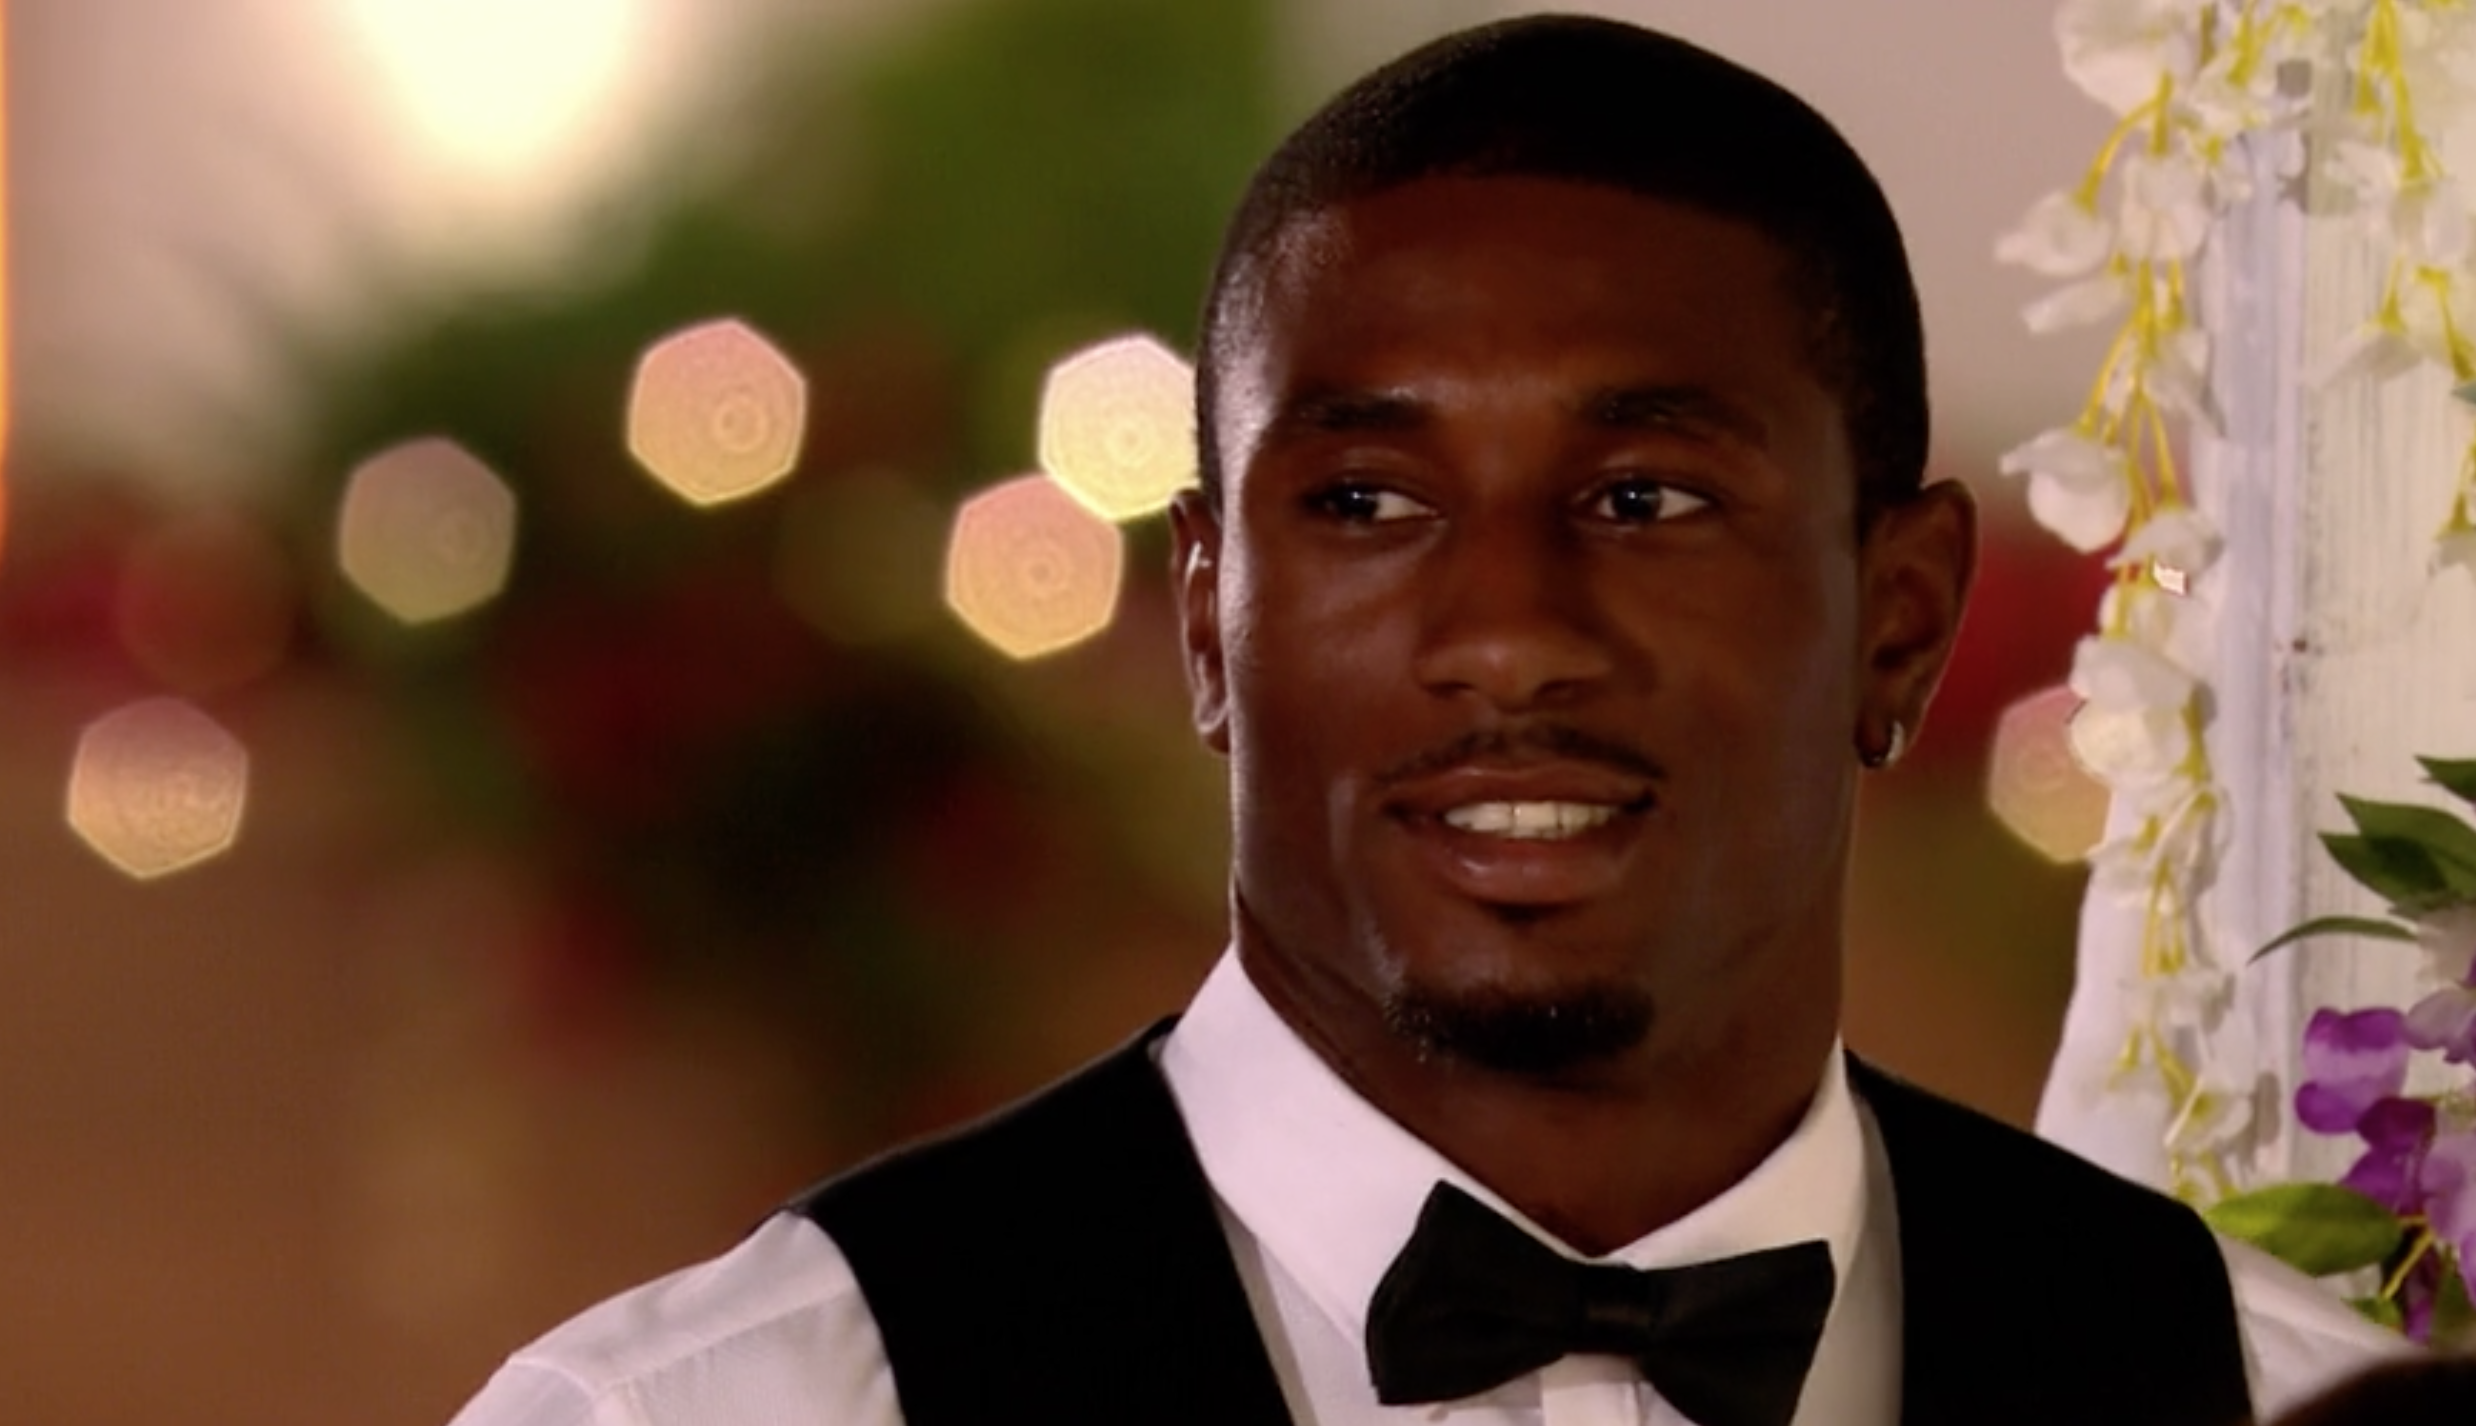 Love Island's Ovie Soko signed up as chef for This Morning